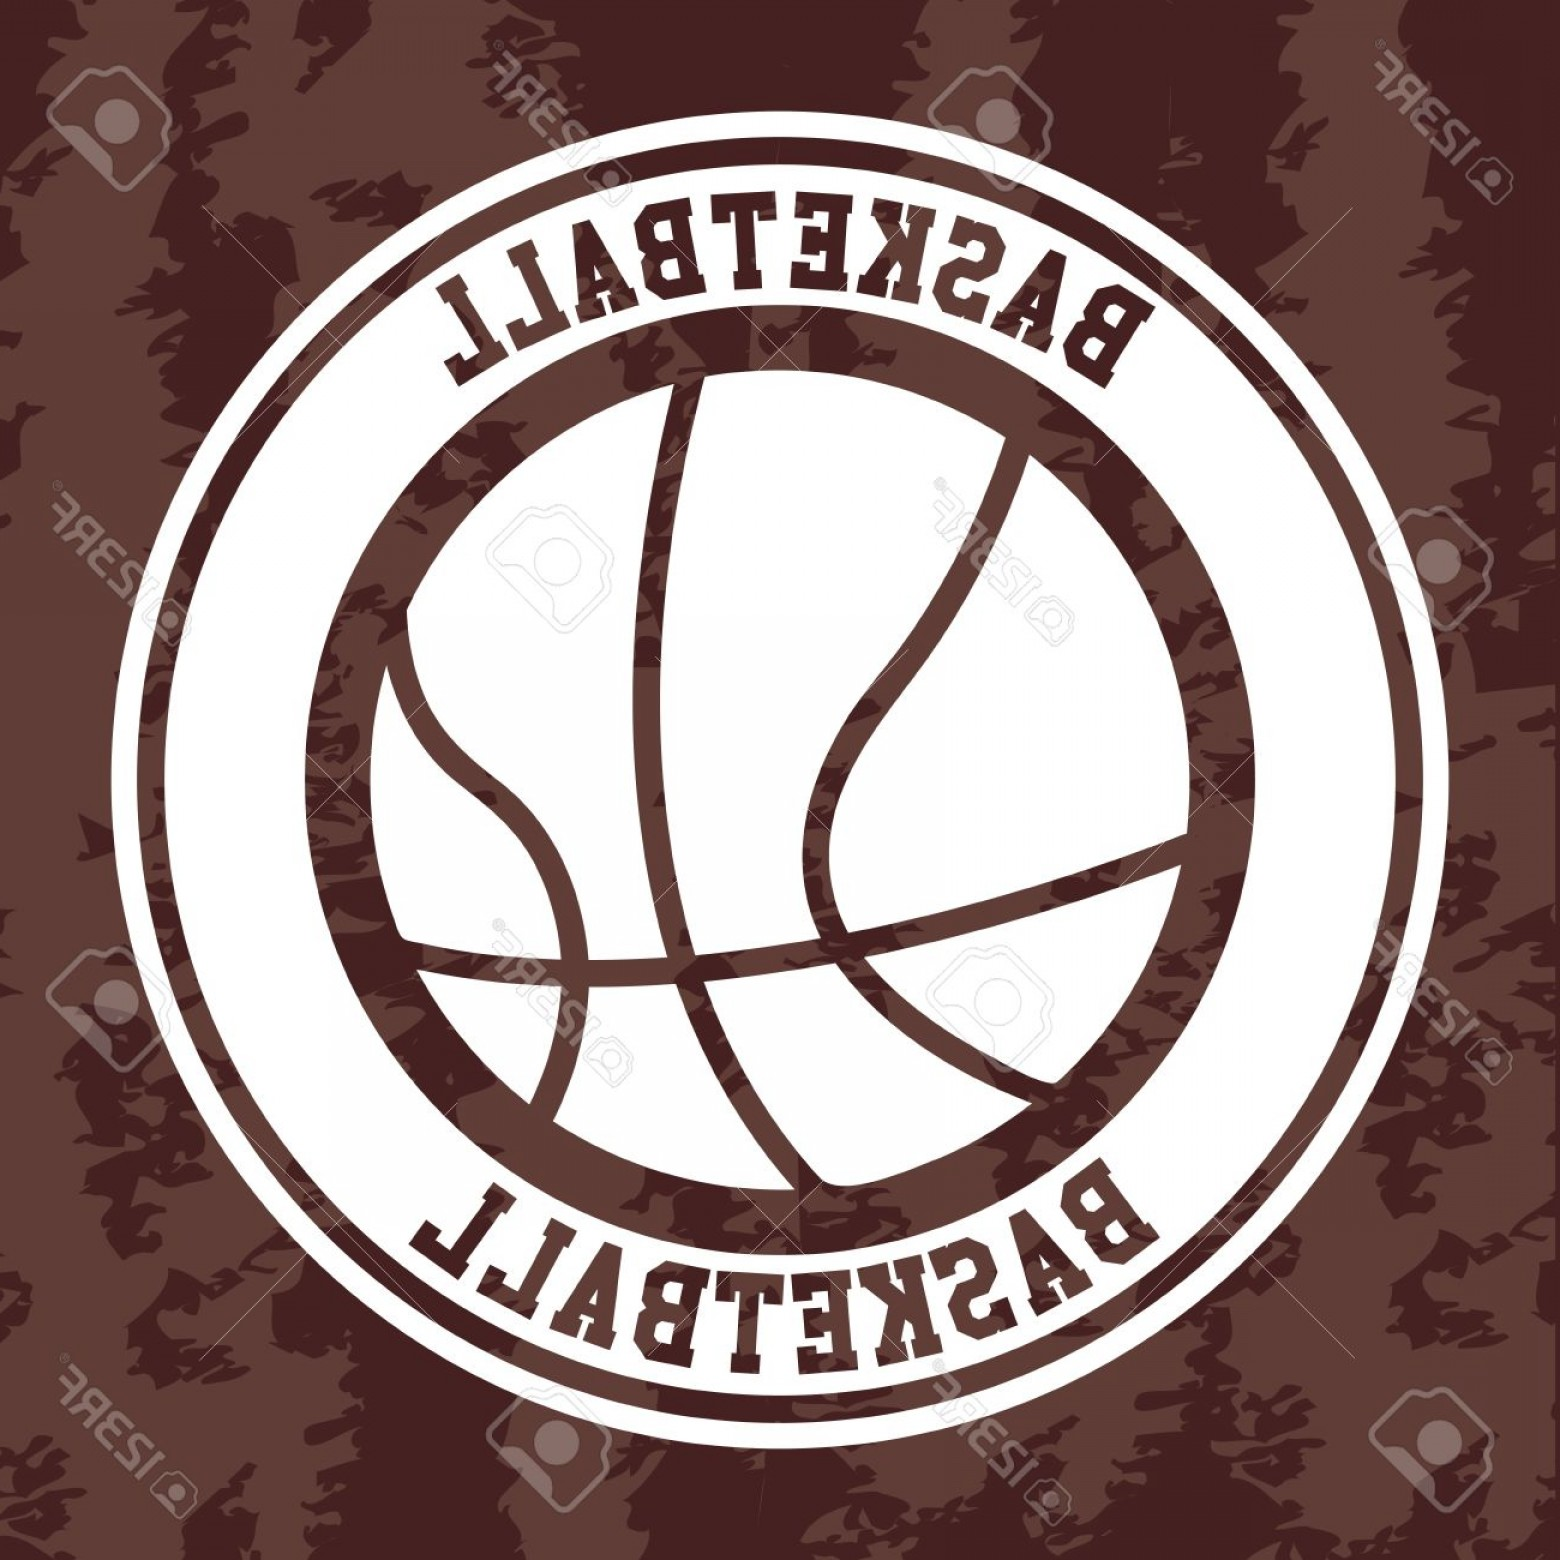 Vintage Basketball Vector: Photobasketball Label Over Vintage Background Vector Illustration